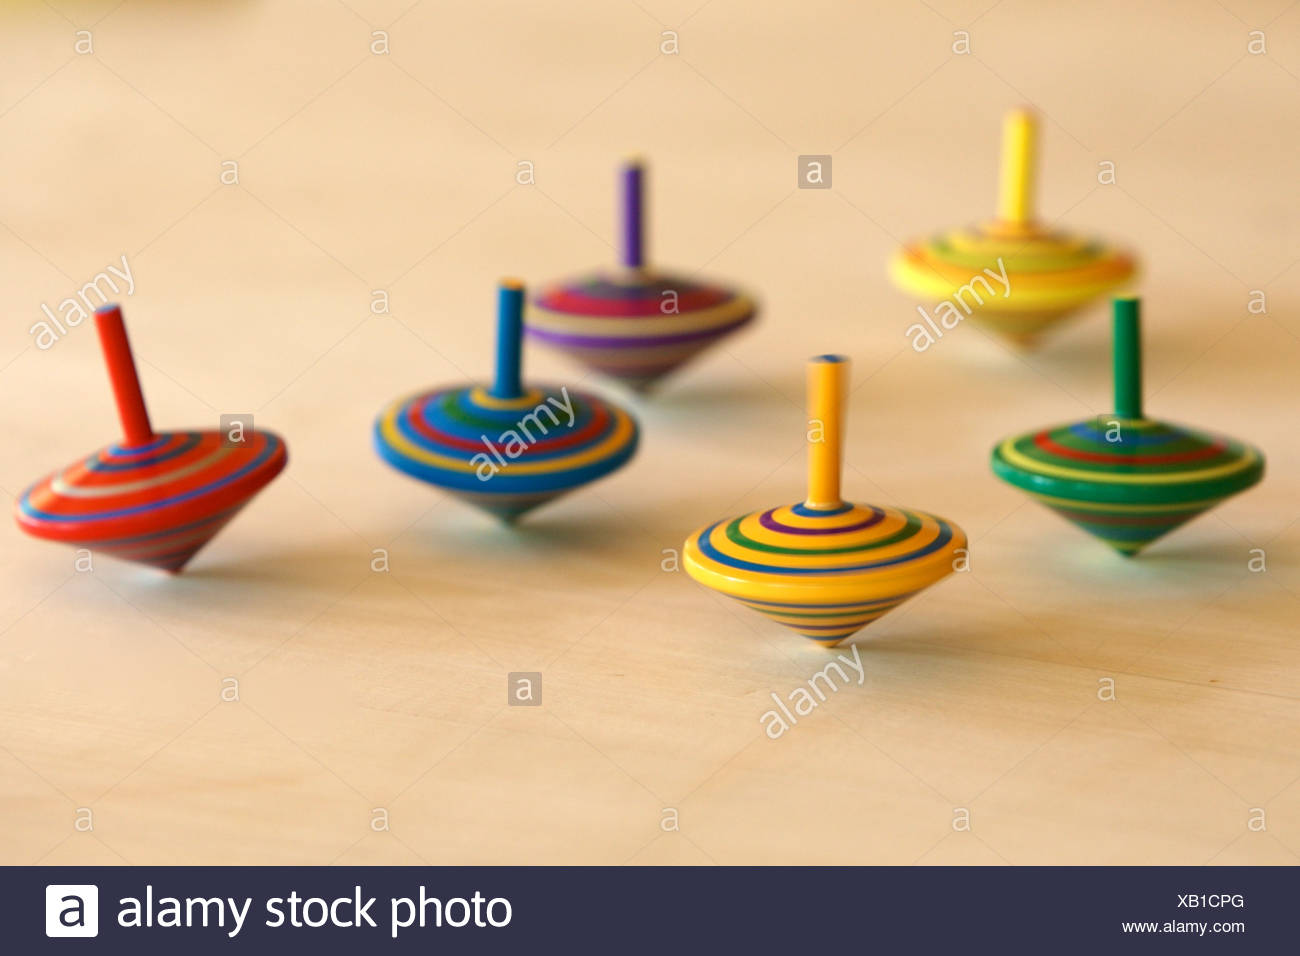 Colourful spinning tops Stock Photo: 282159096 - Alamy